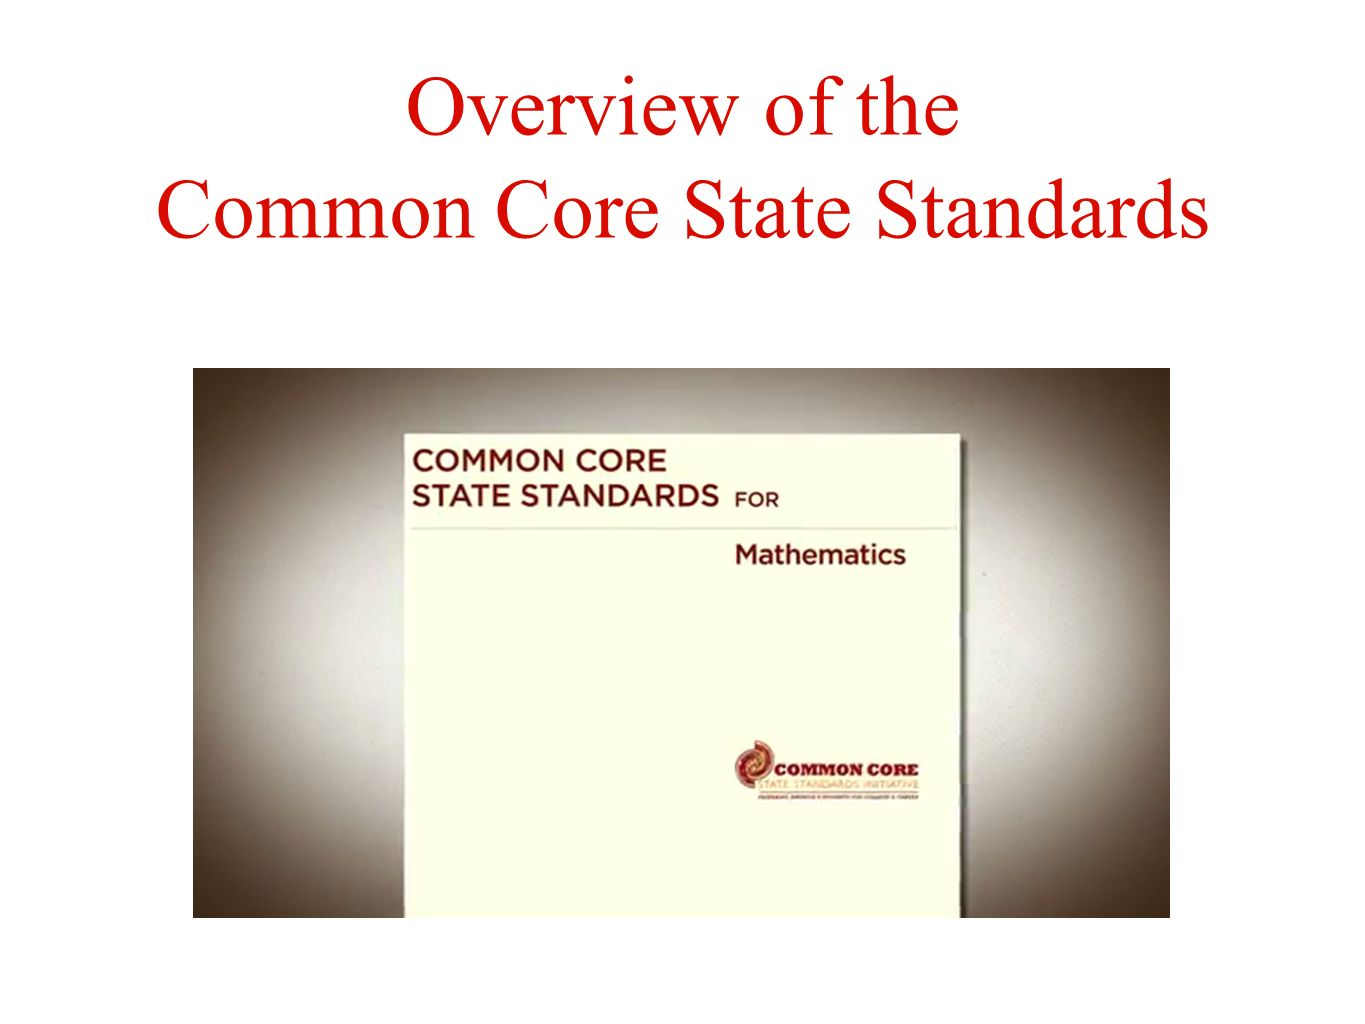 Overview of the Common Core State Standards